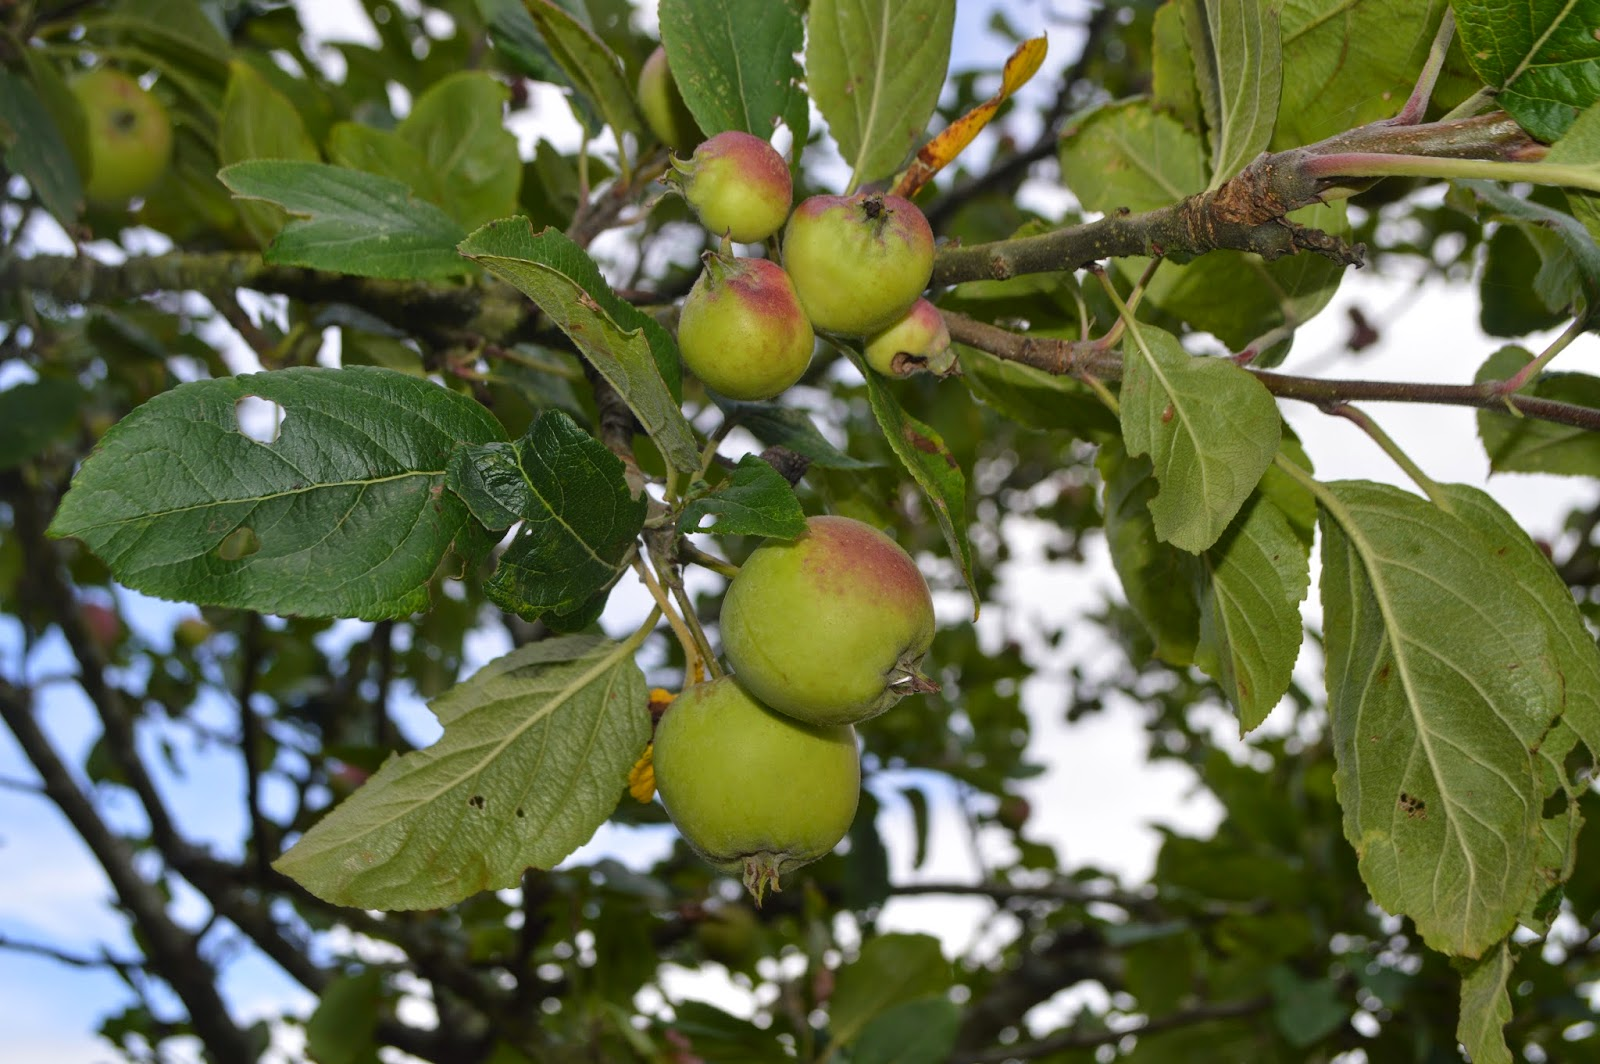 crab apples, Blackberry Picking, Neyland, Marina, Pembrokeshire, Crumble, Apple Pie, Baking, country kids, Wales